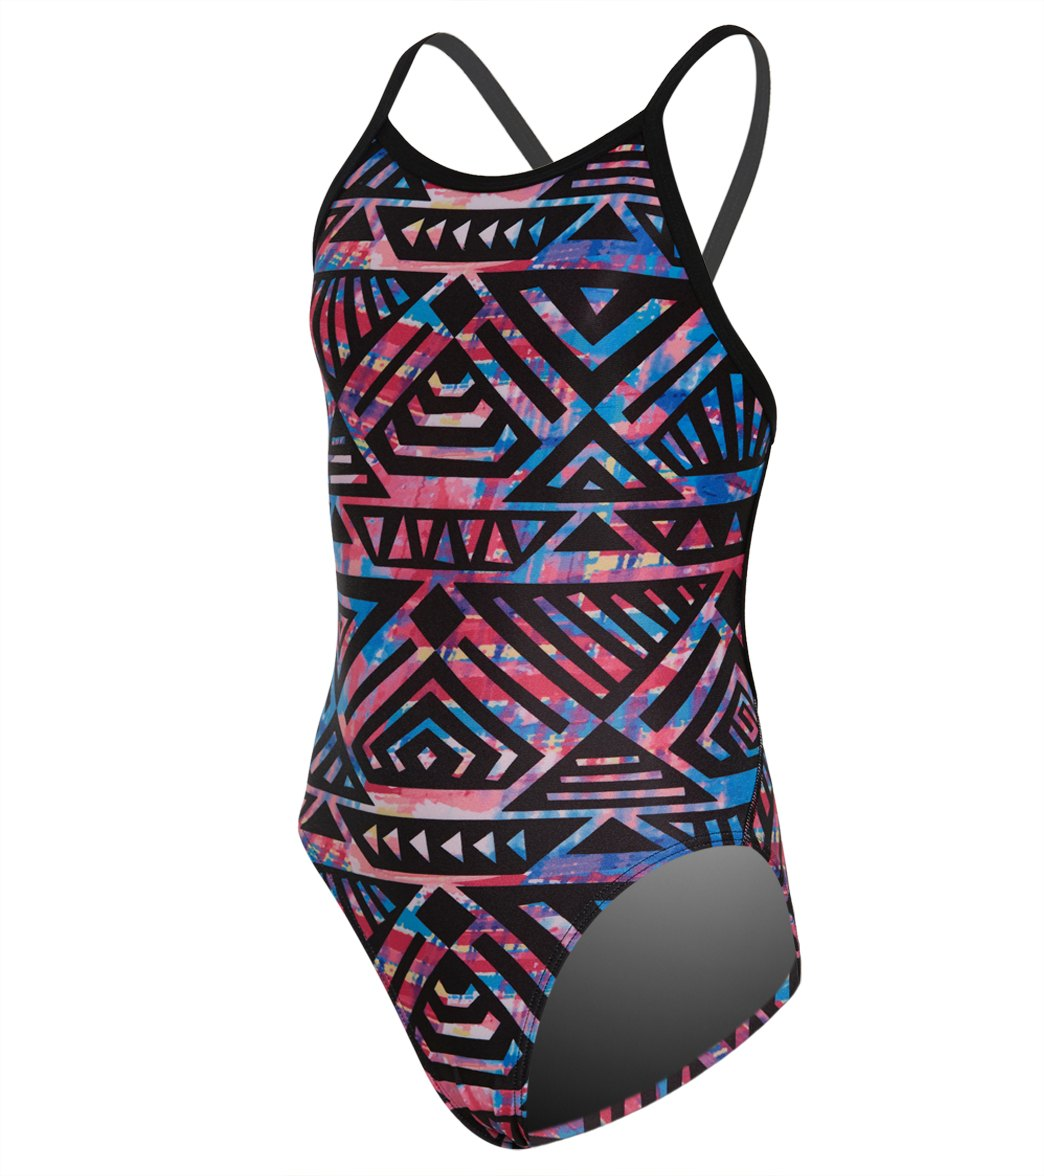 ebd18c162e Amanzi Girls' Tiki Princess One Piece Swimsuit at SwimOutlet.com - Free  Shipping